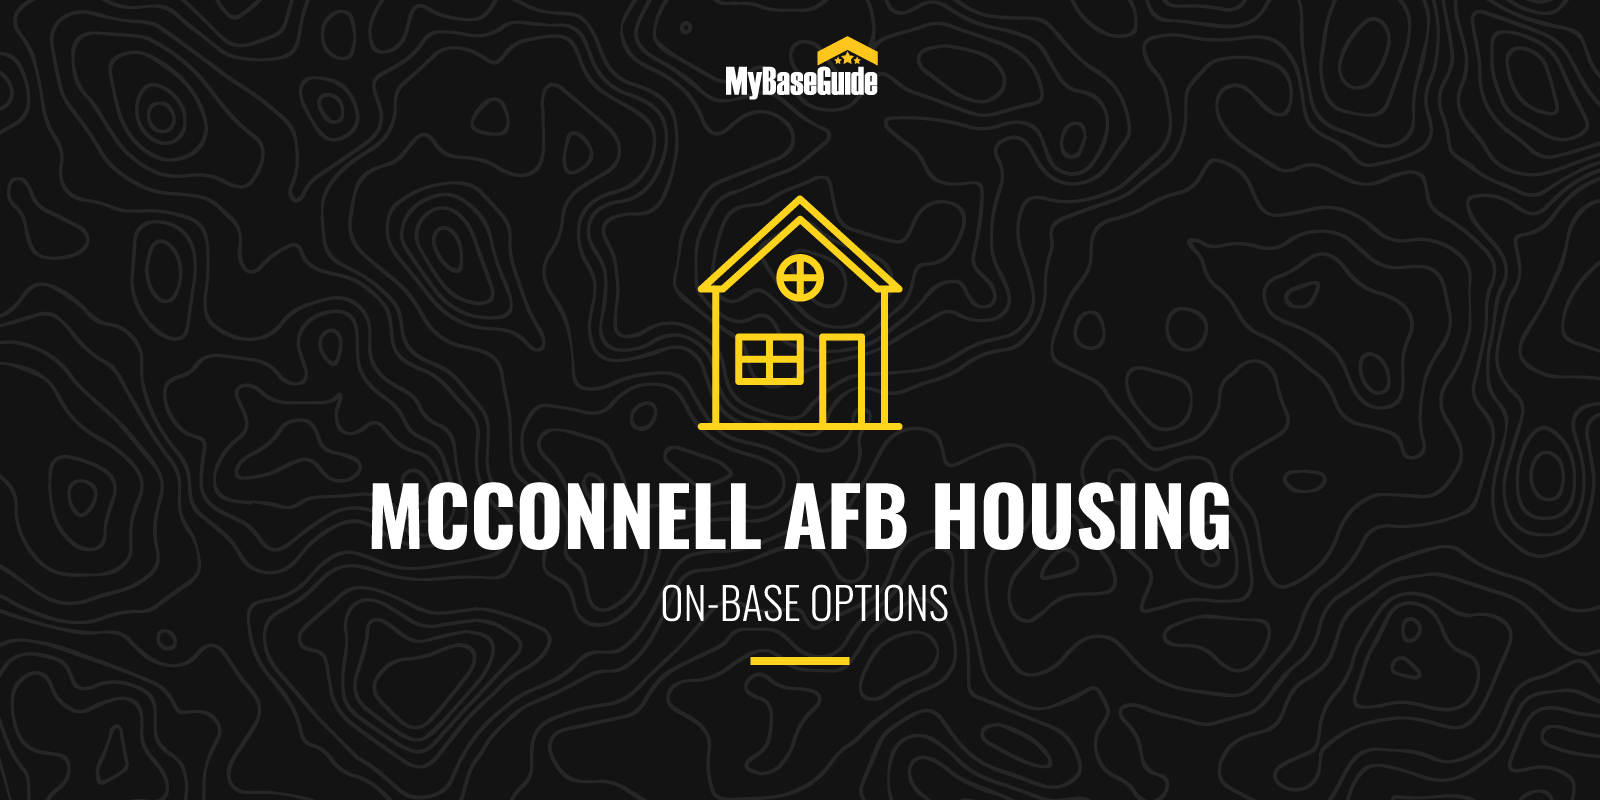 McConnell AFB Housing: On-Base Options